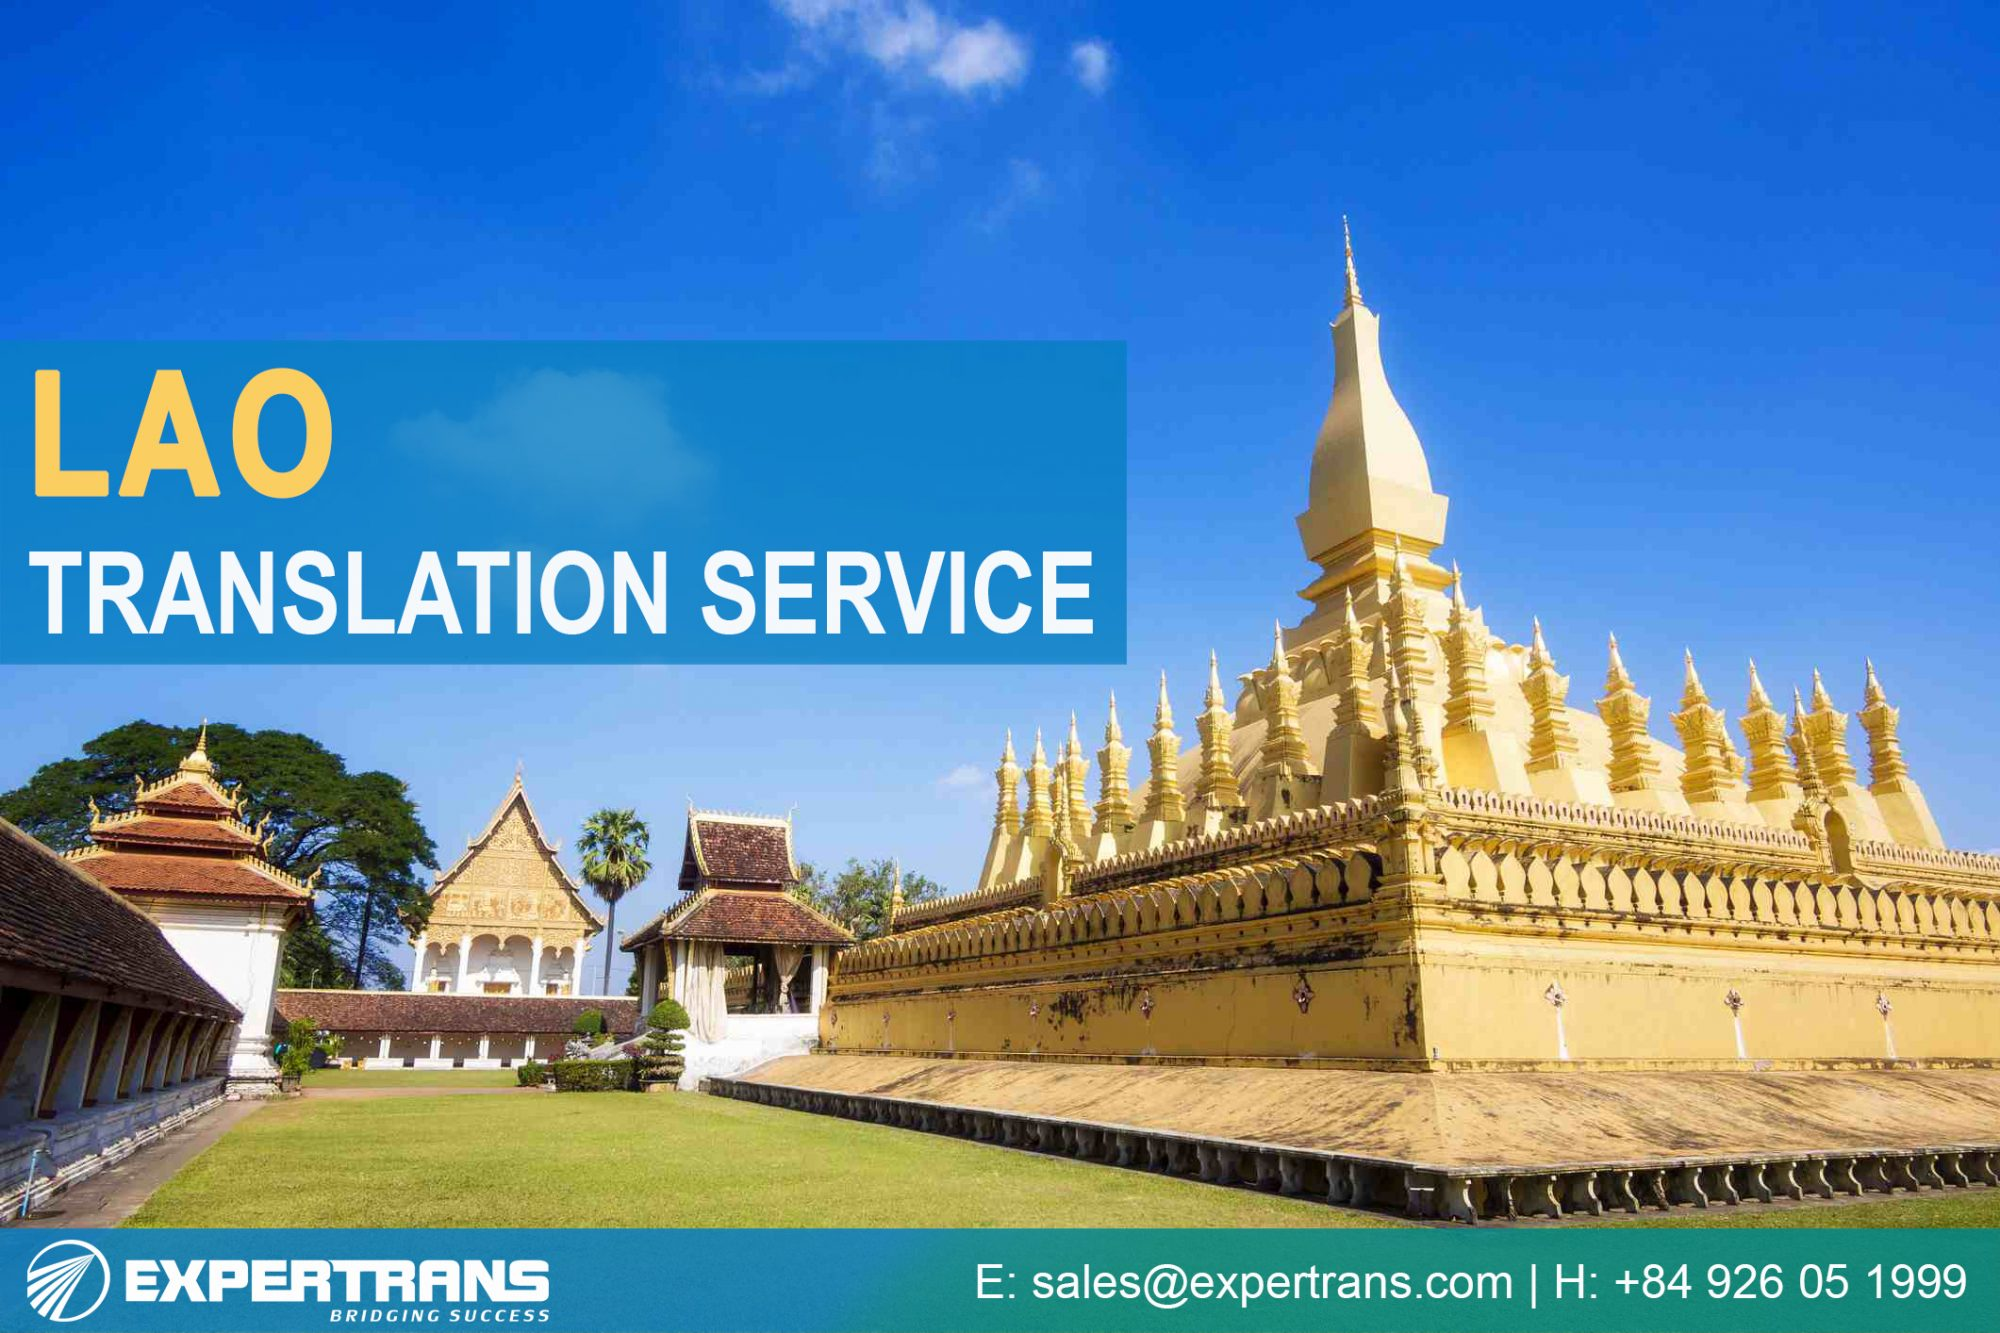 Lao Translation Service